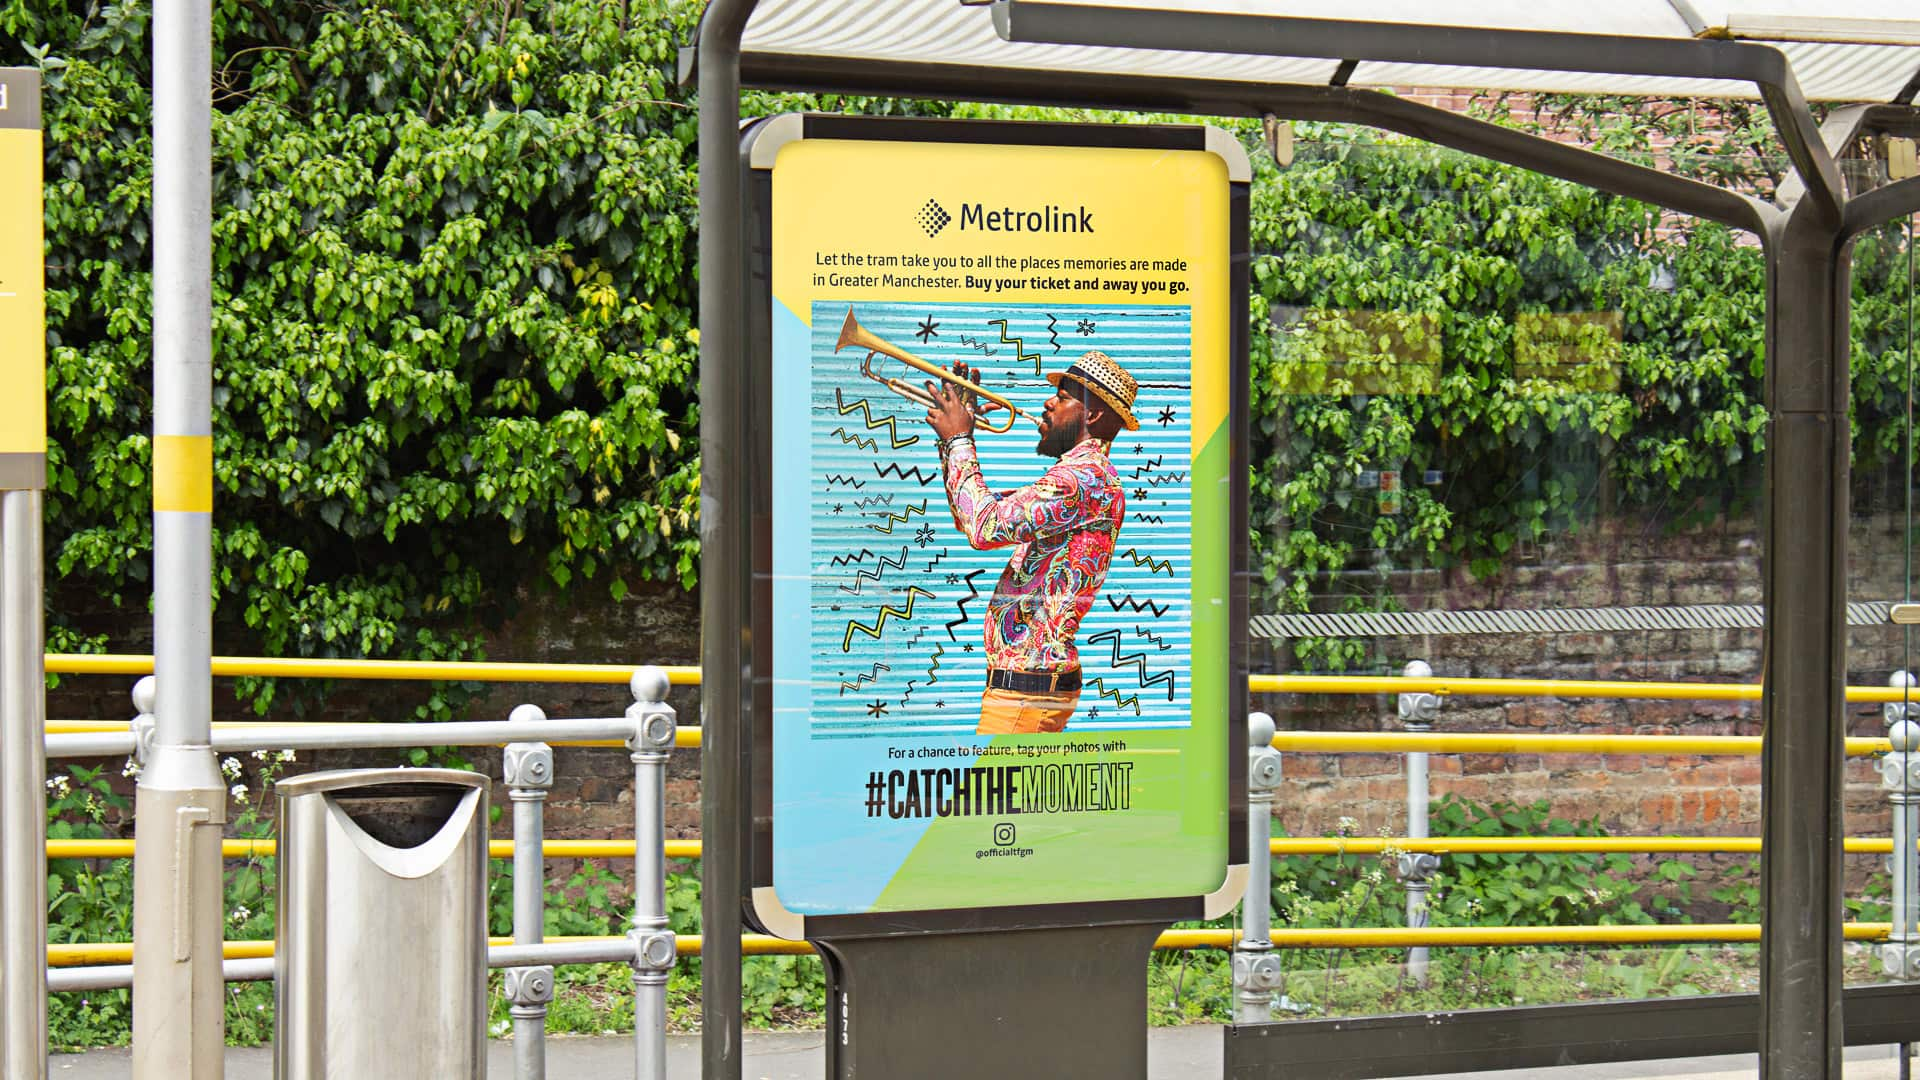 integrated multichannel campaign for TfGM across social and outdoor